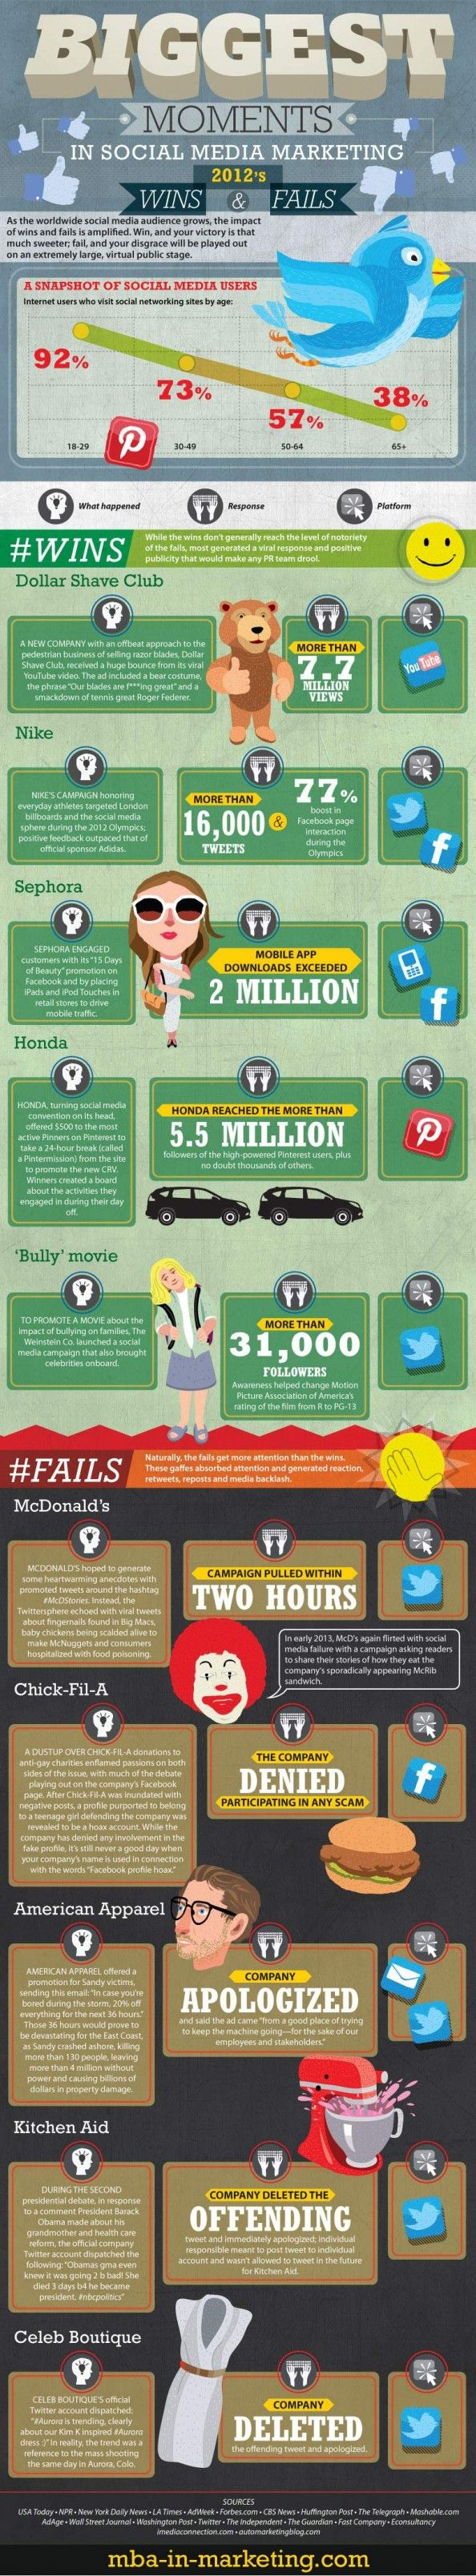 Brand wins and fails in social media #Infographic